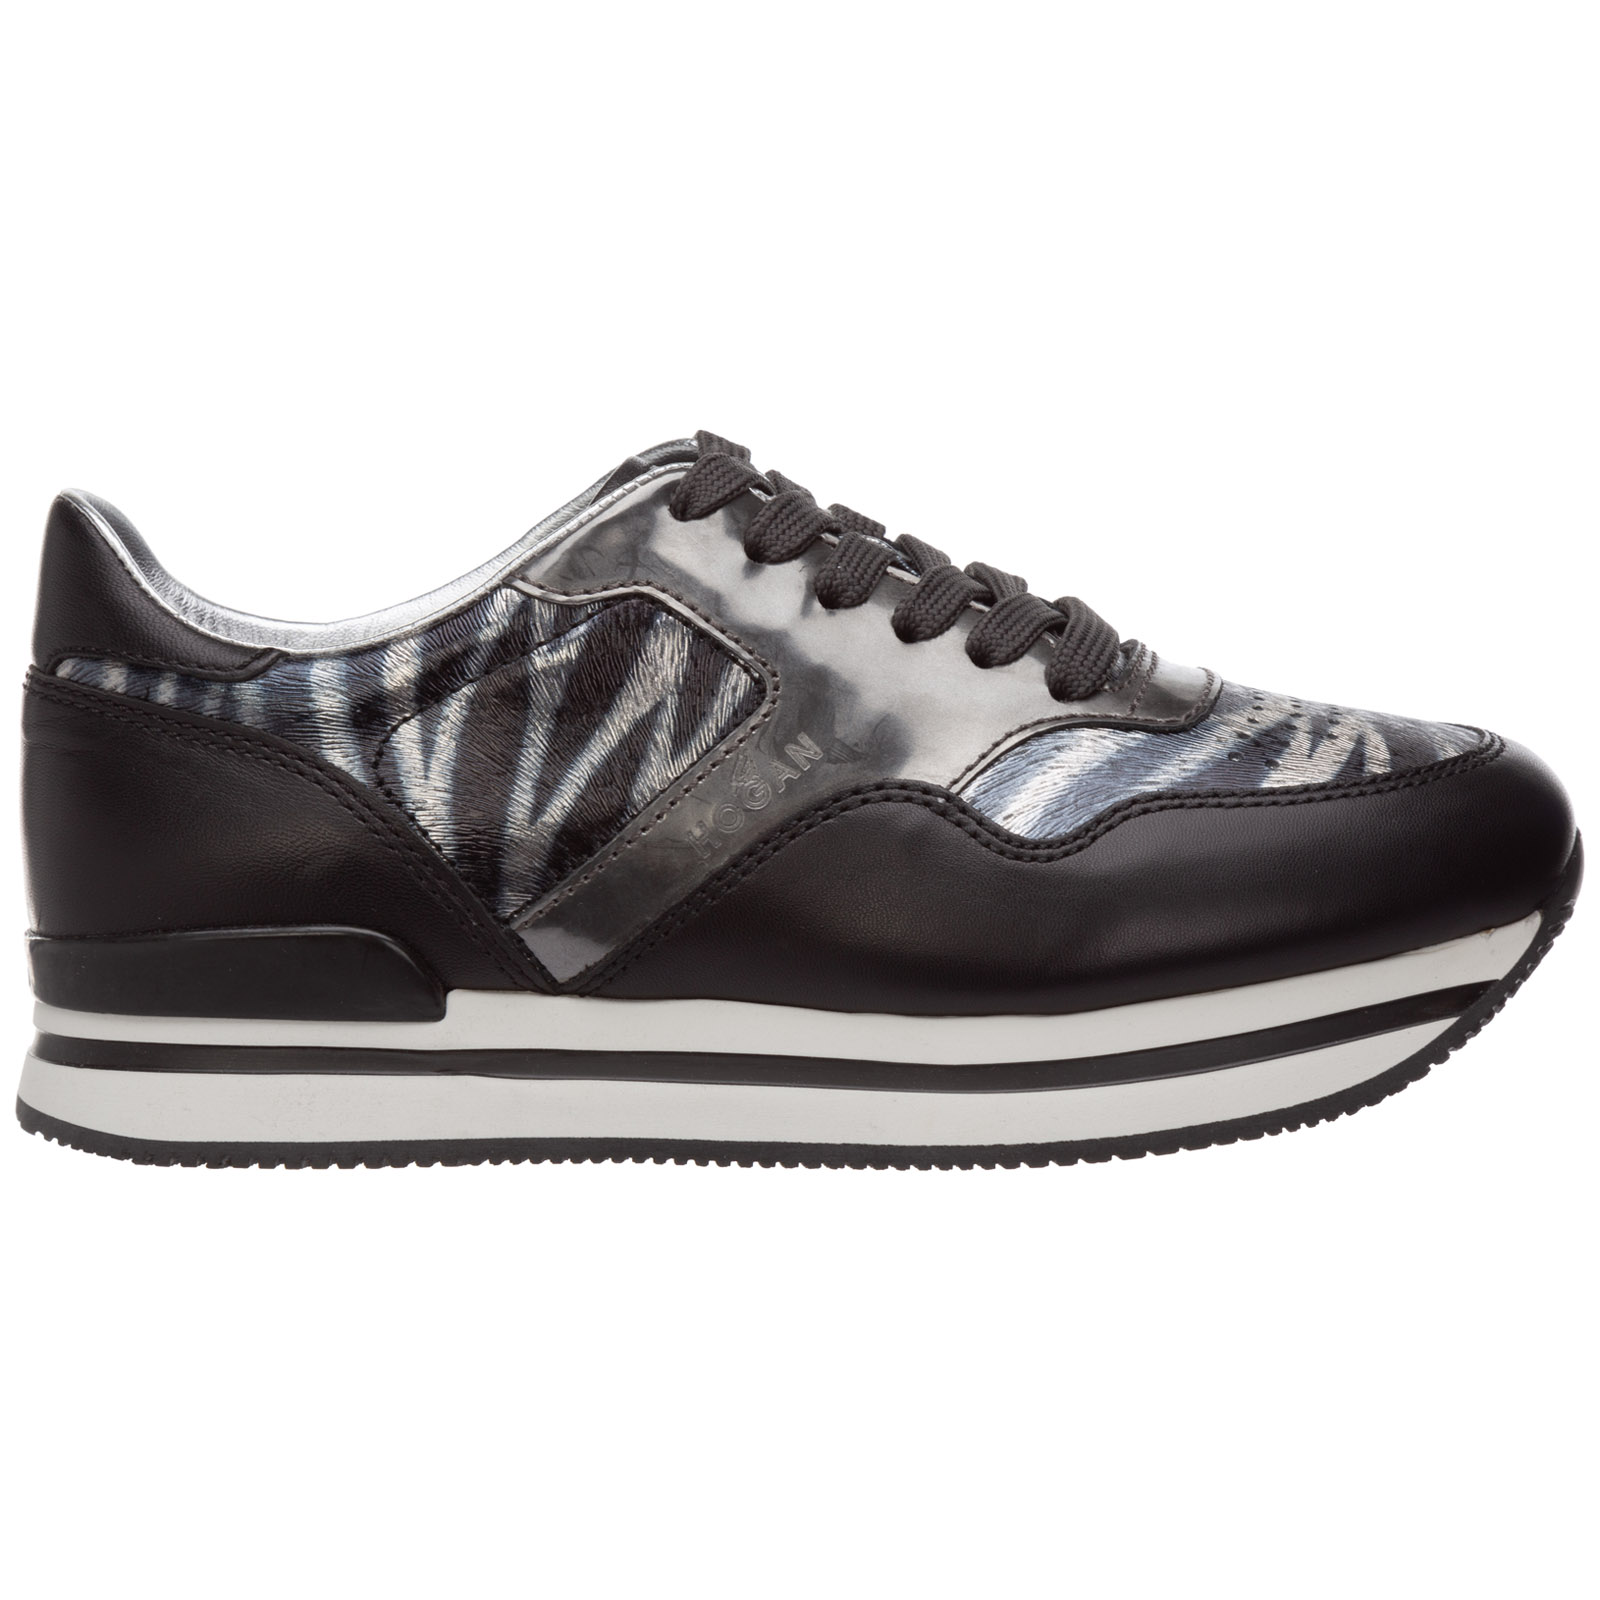 Women's shoes leather trainers sneakers h222